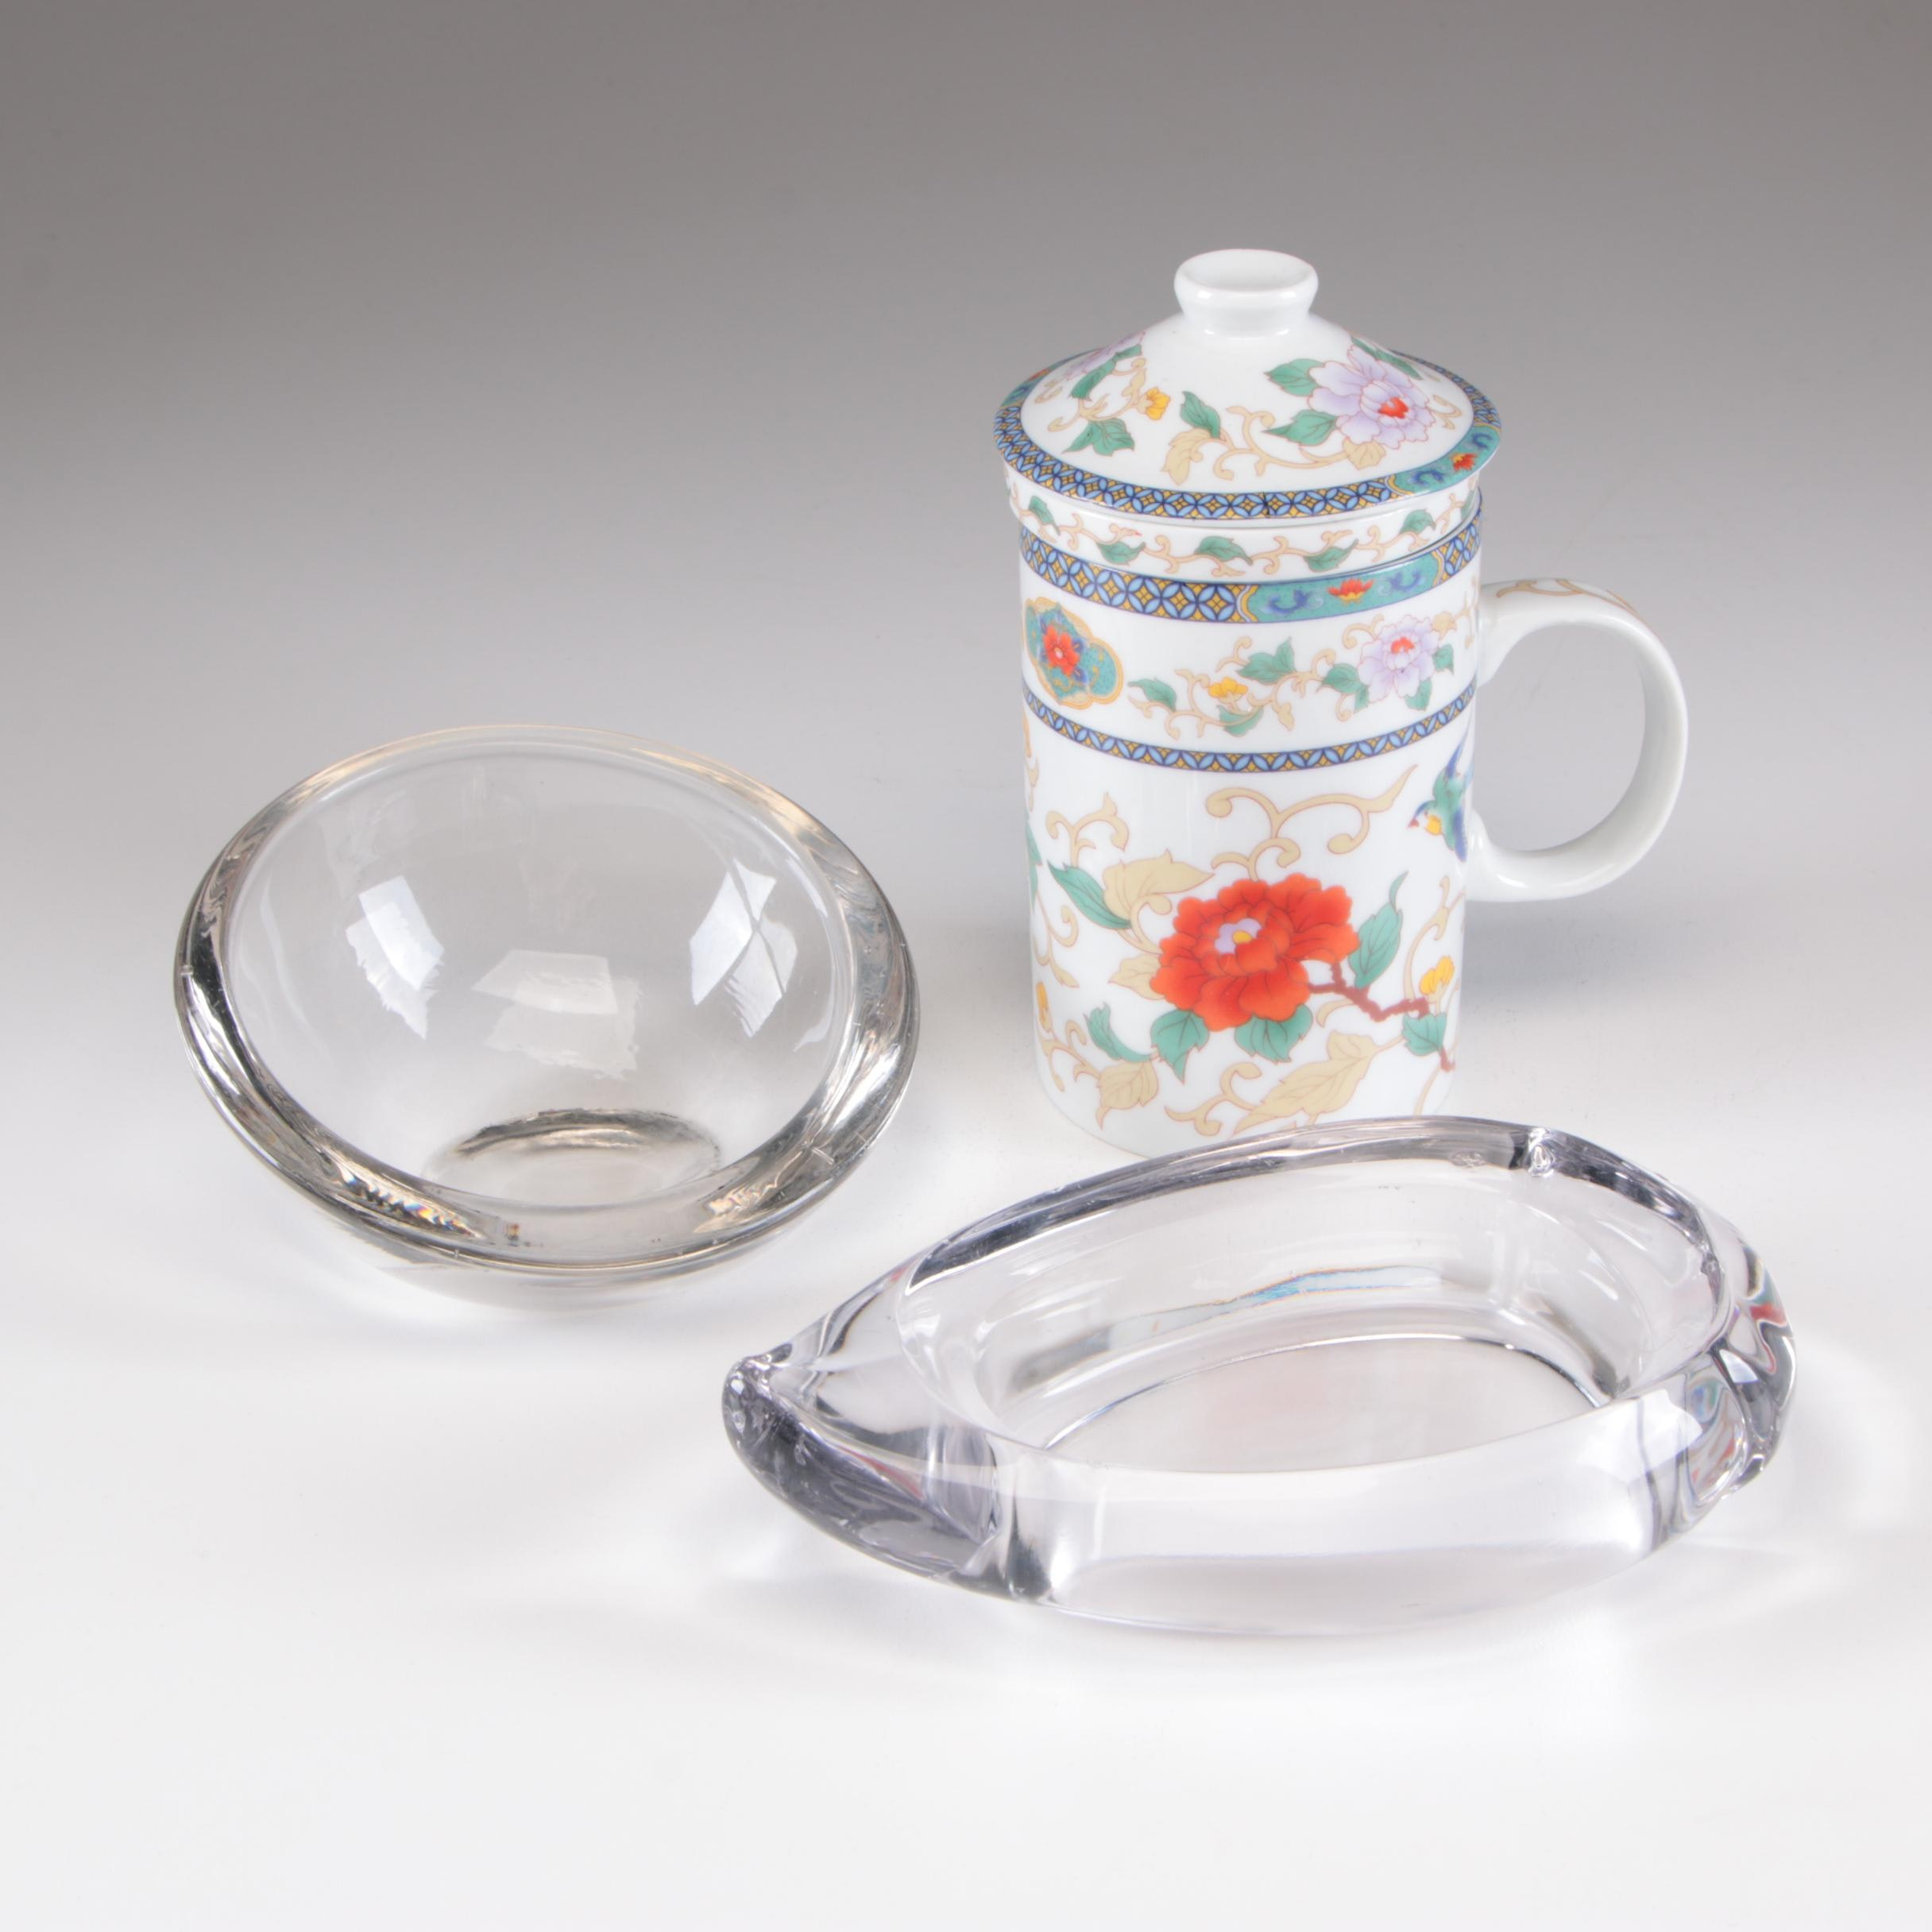 Porcelain Teacup with Infuser and Glass Serveware